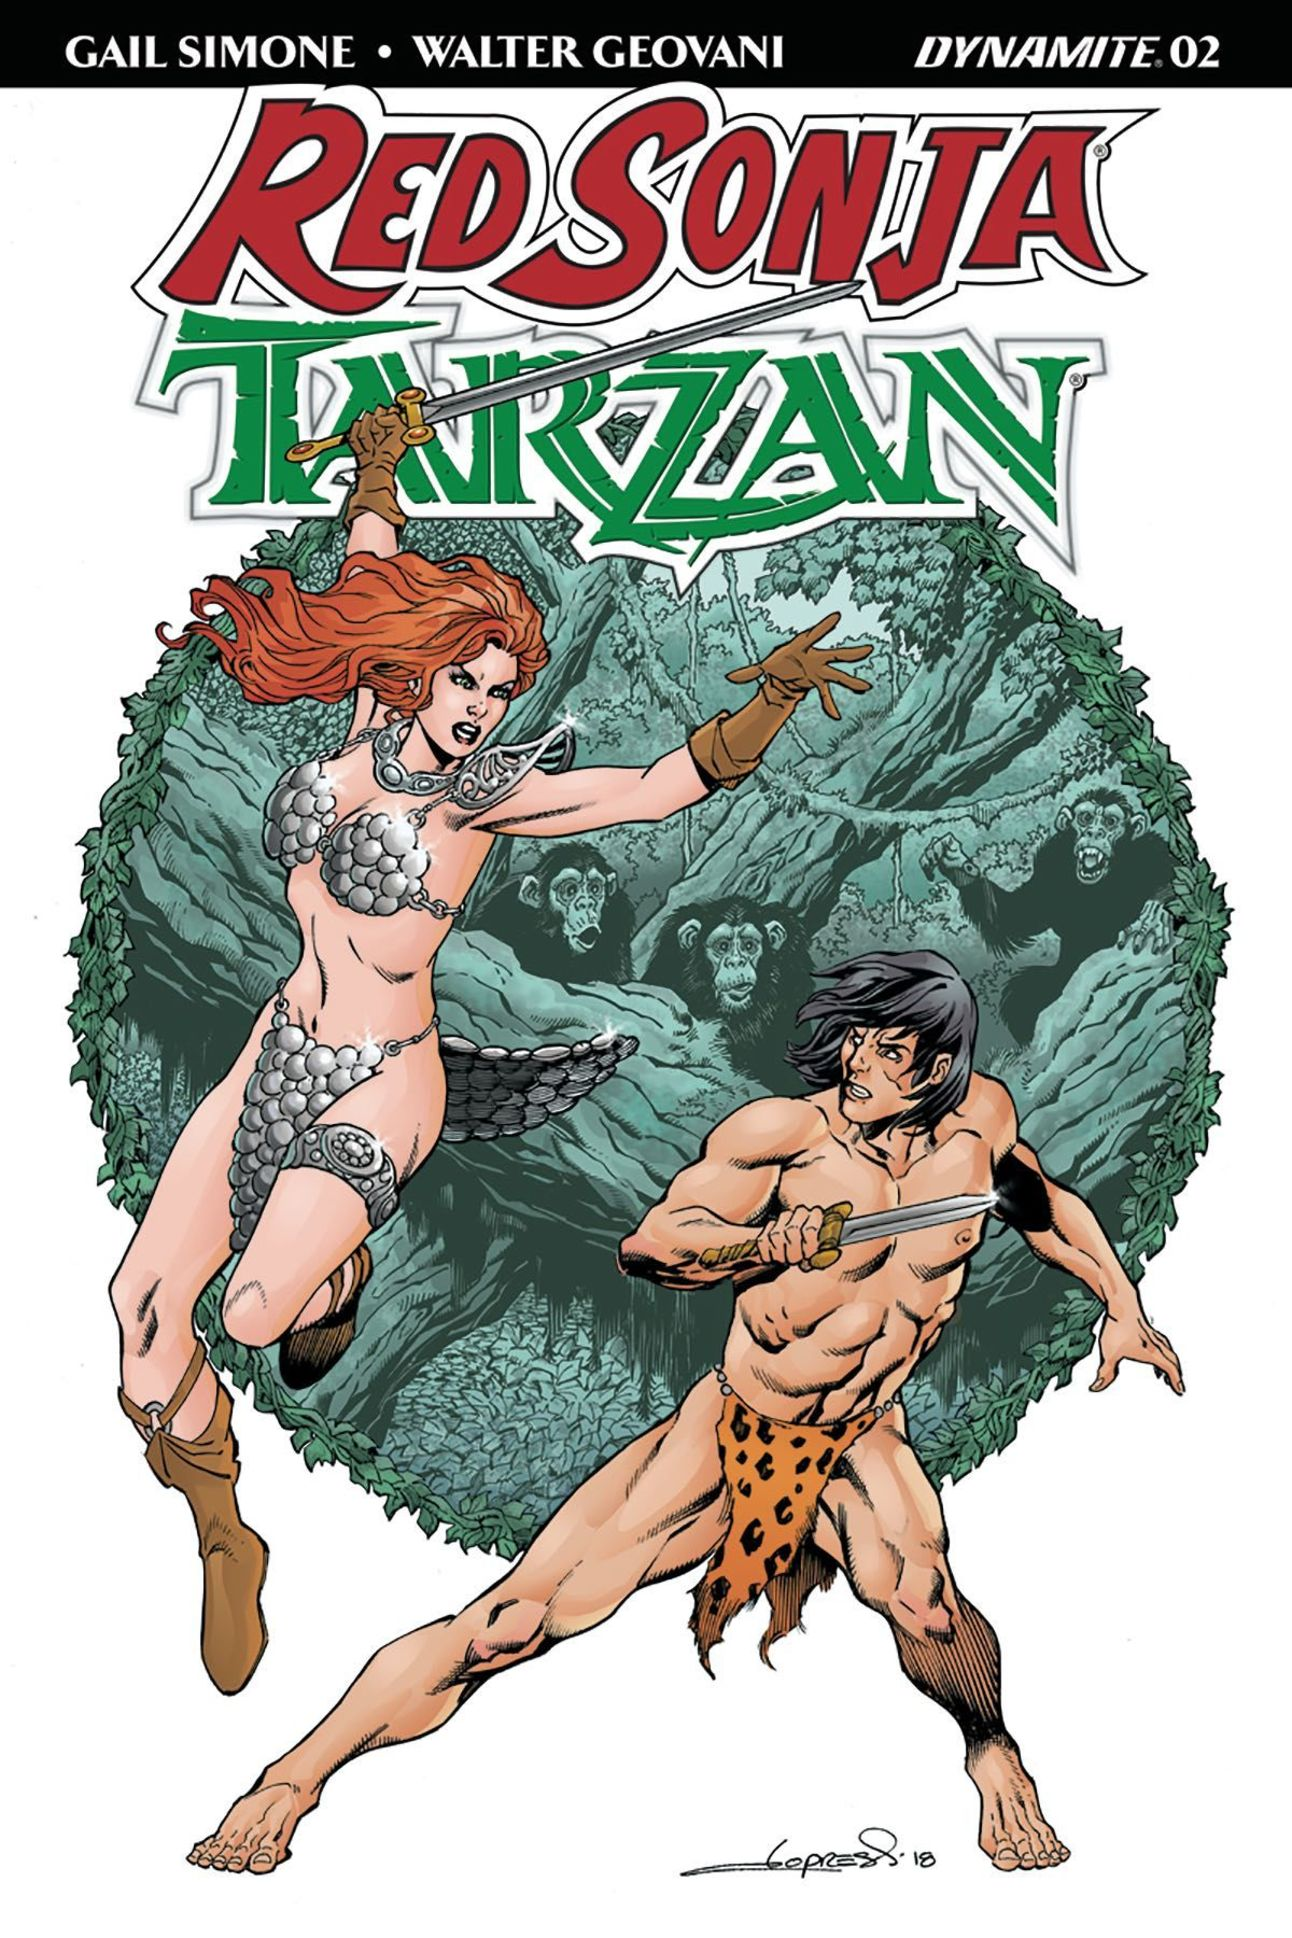 Red Sonja Tarzan 2 cover by Aaron Lopresti